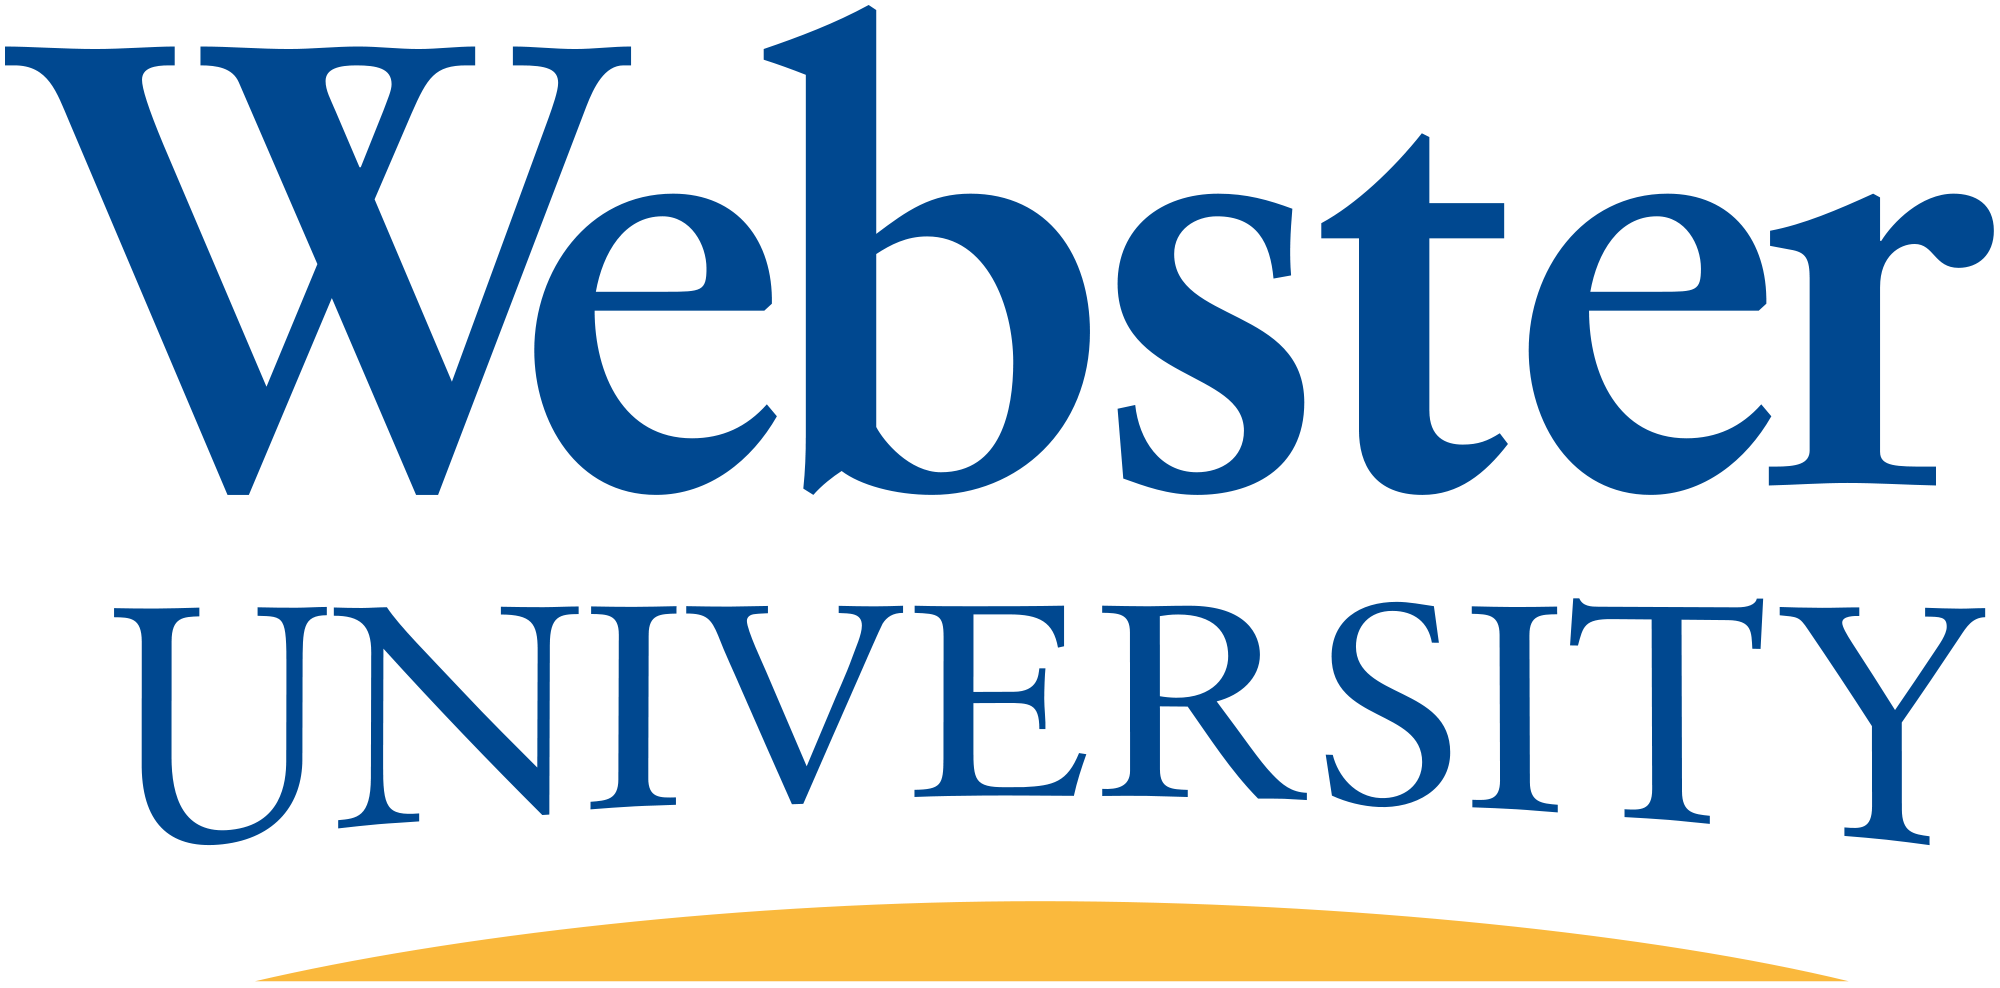 Webster University Student Storage